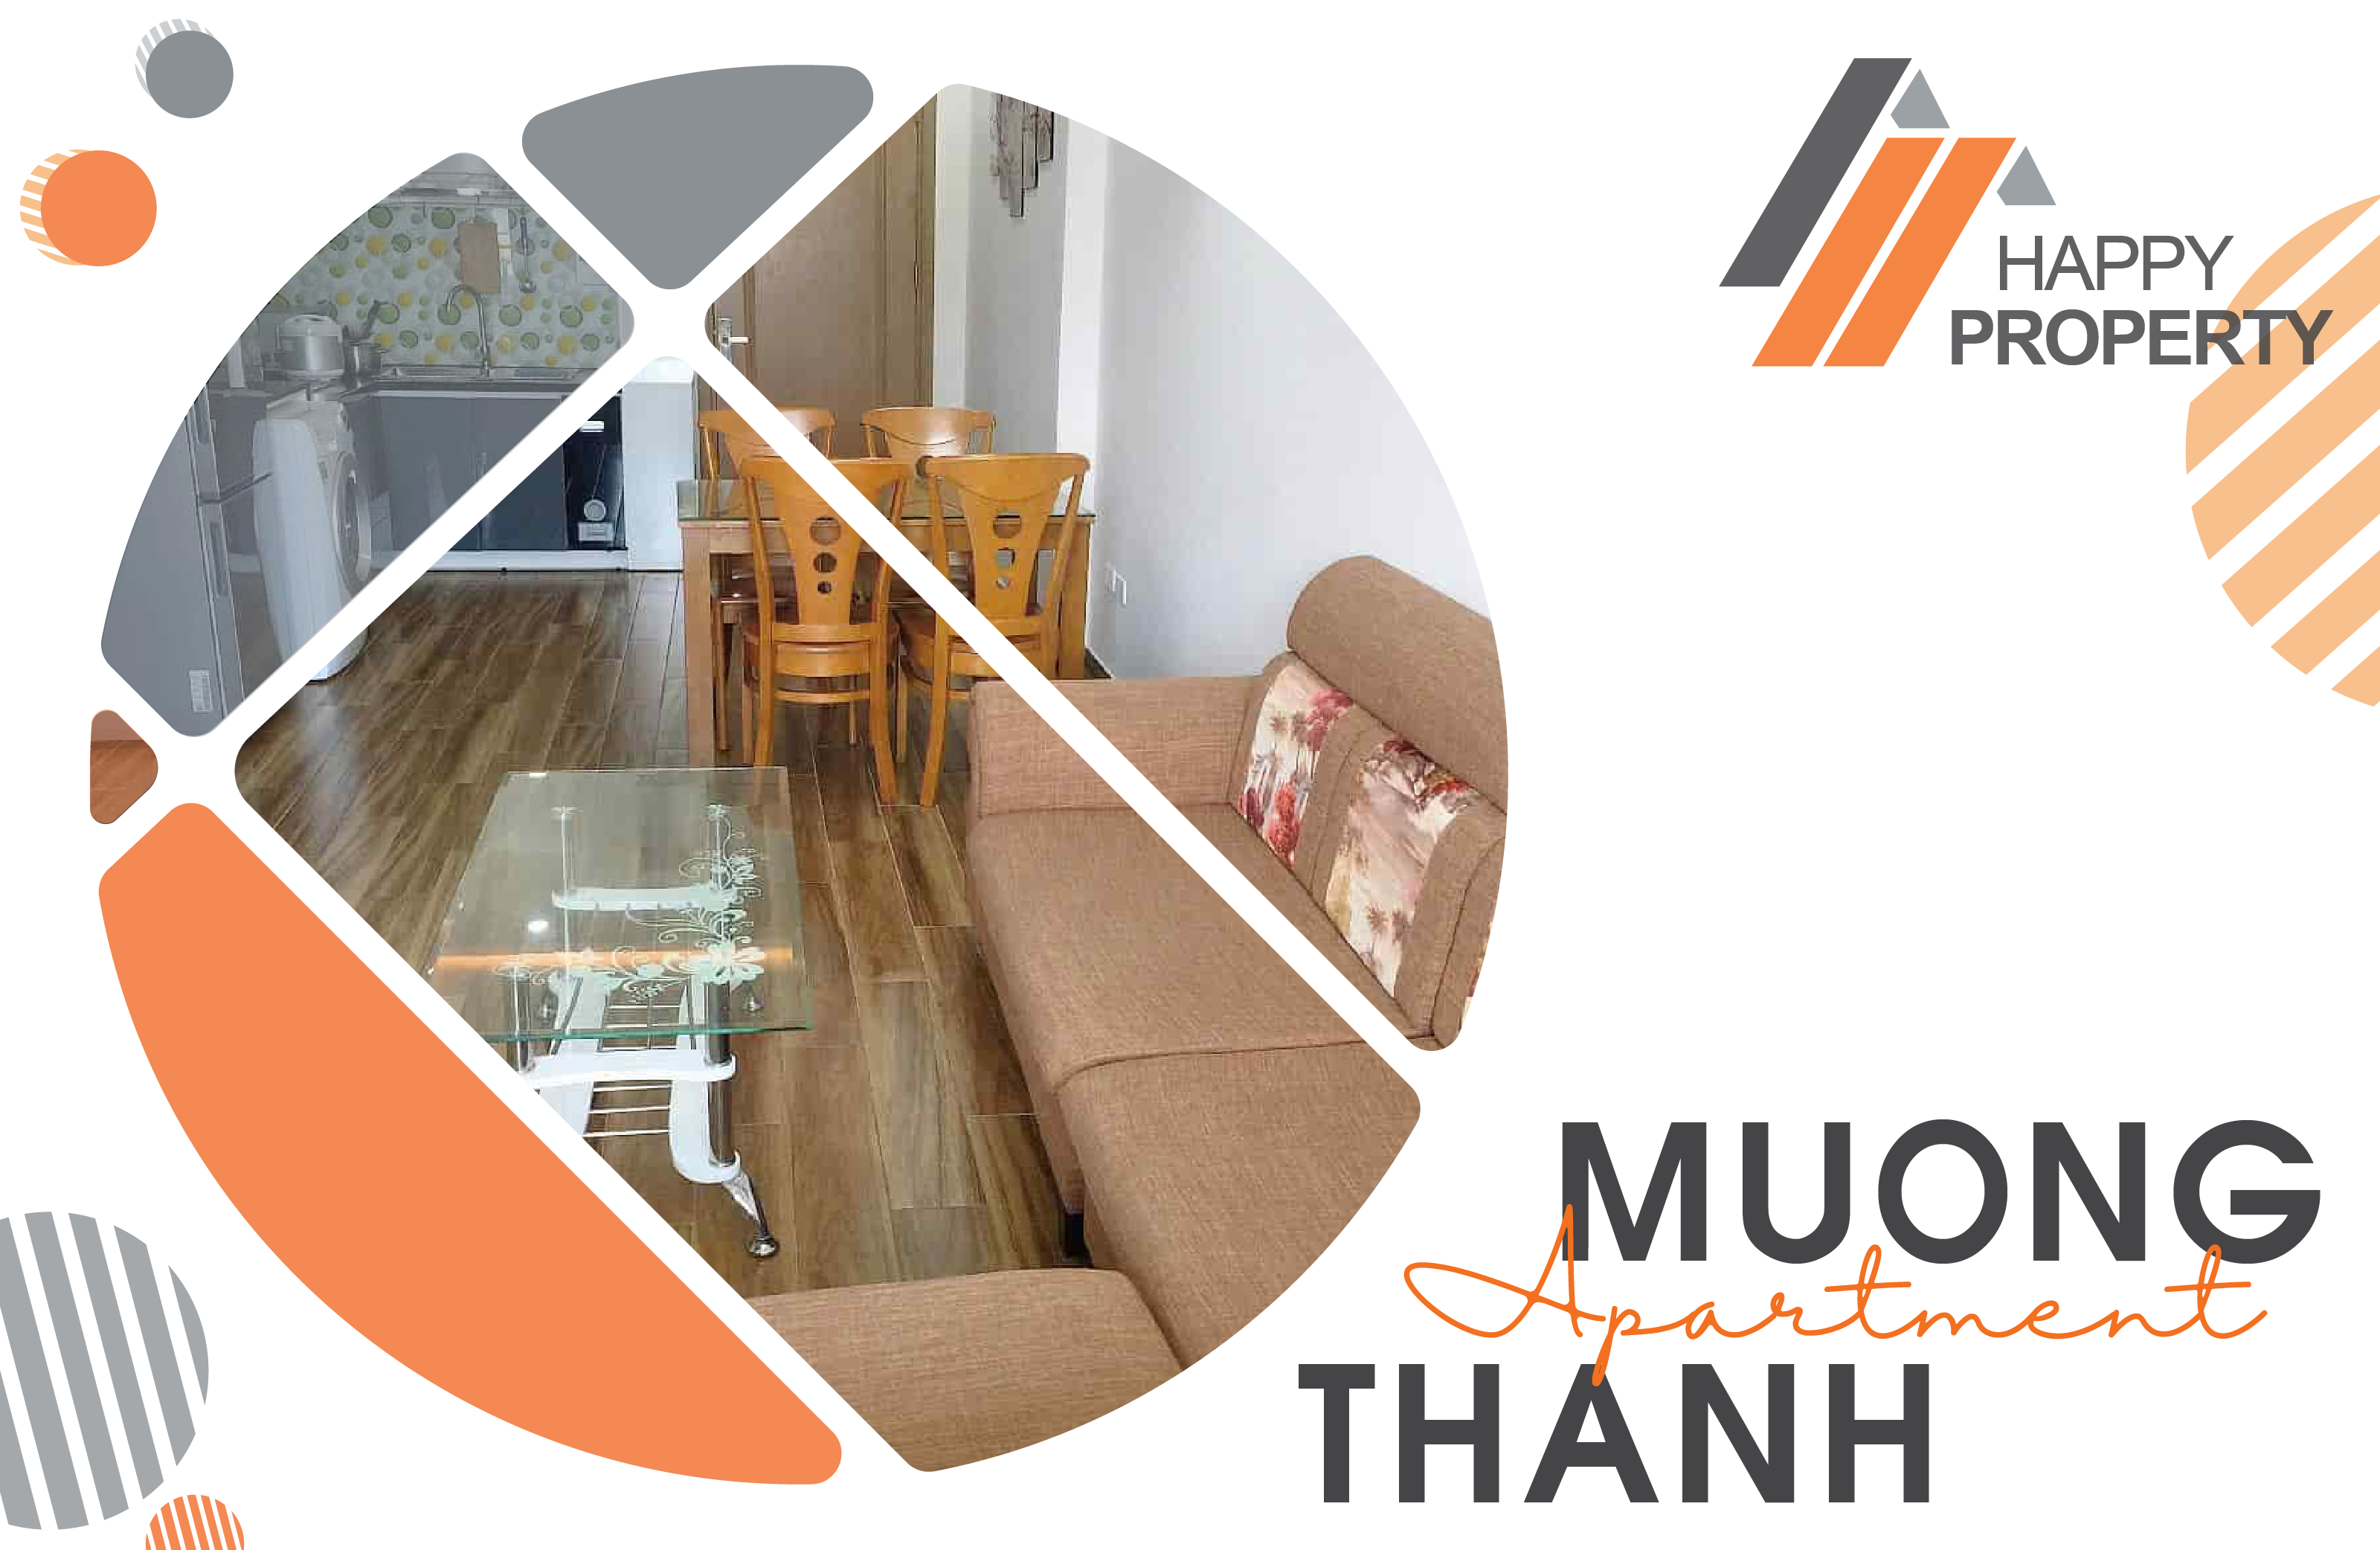 Elegant Muong Thanh Apartment For Rent – MTR23